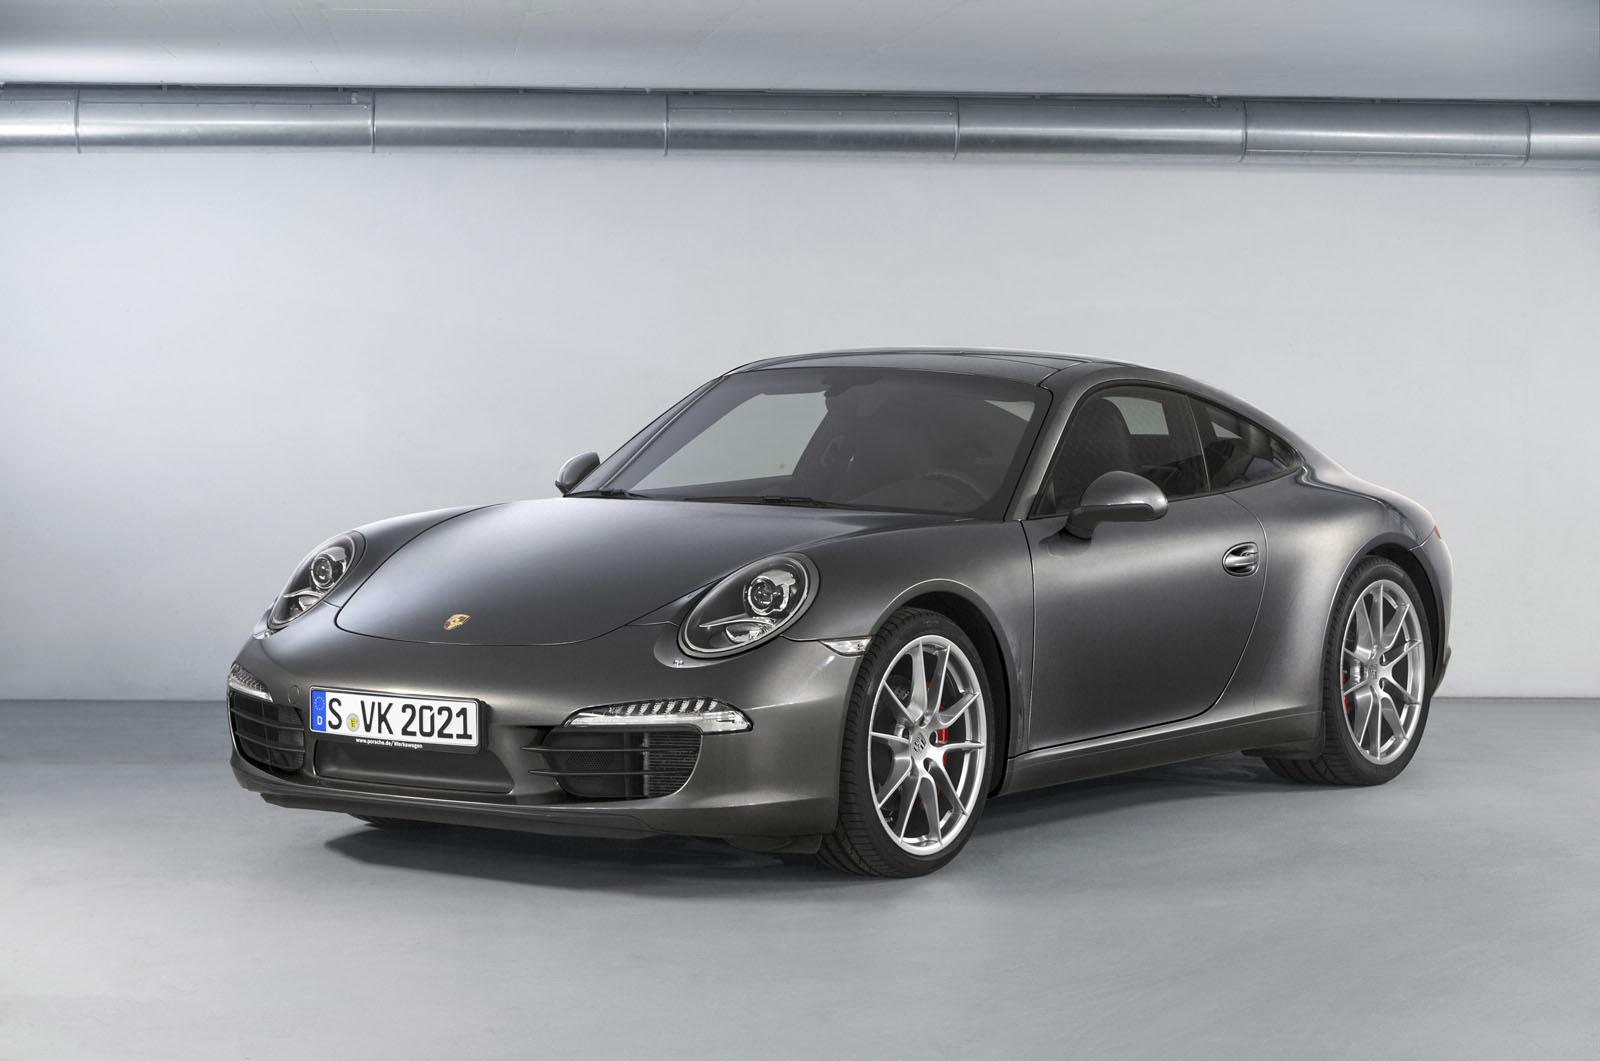 Porsche Injects Extra Power Into 2011 911 Carrera S